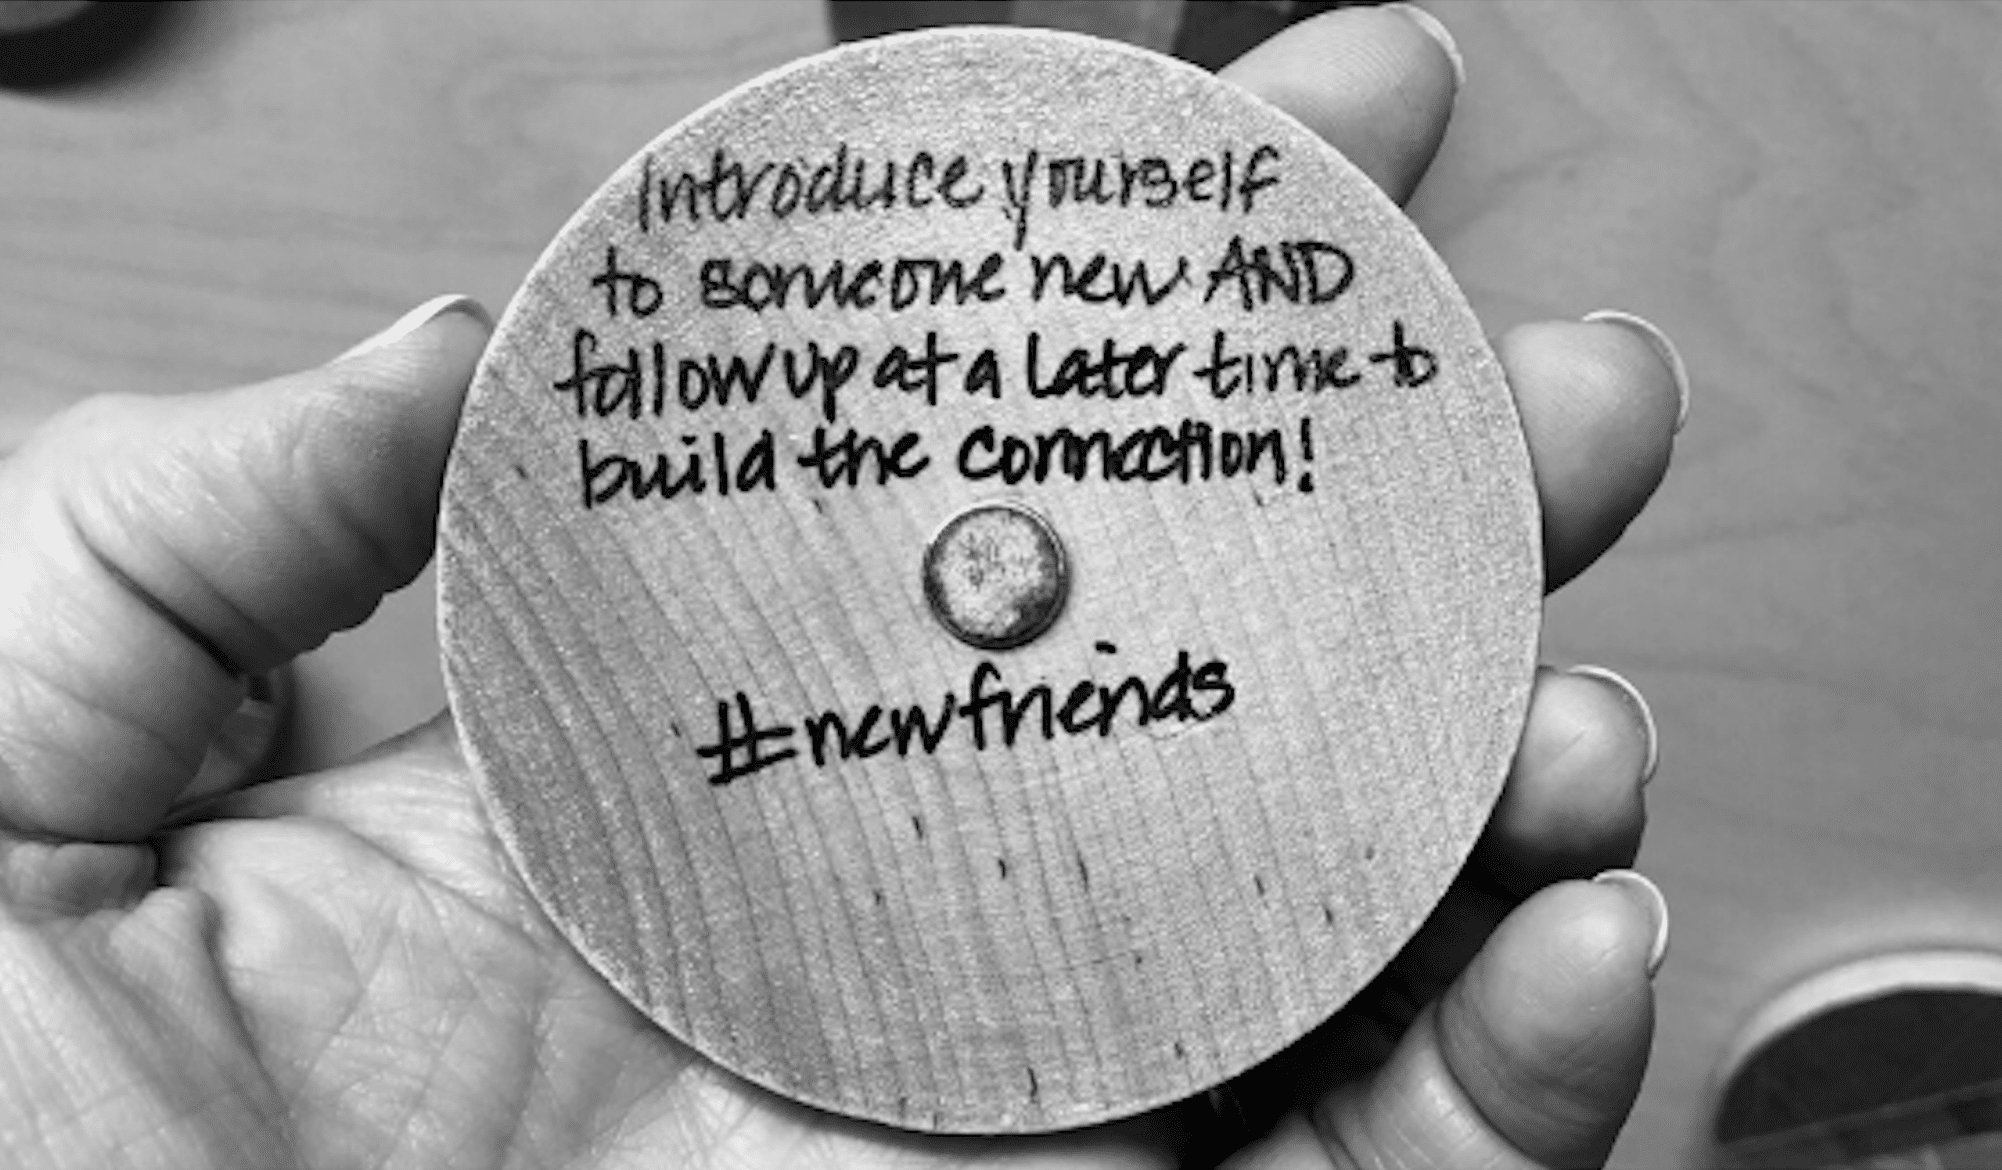 A black and white image of a disc suggesting that introducing yourself to new people, will almost always lead to new friends.